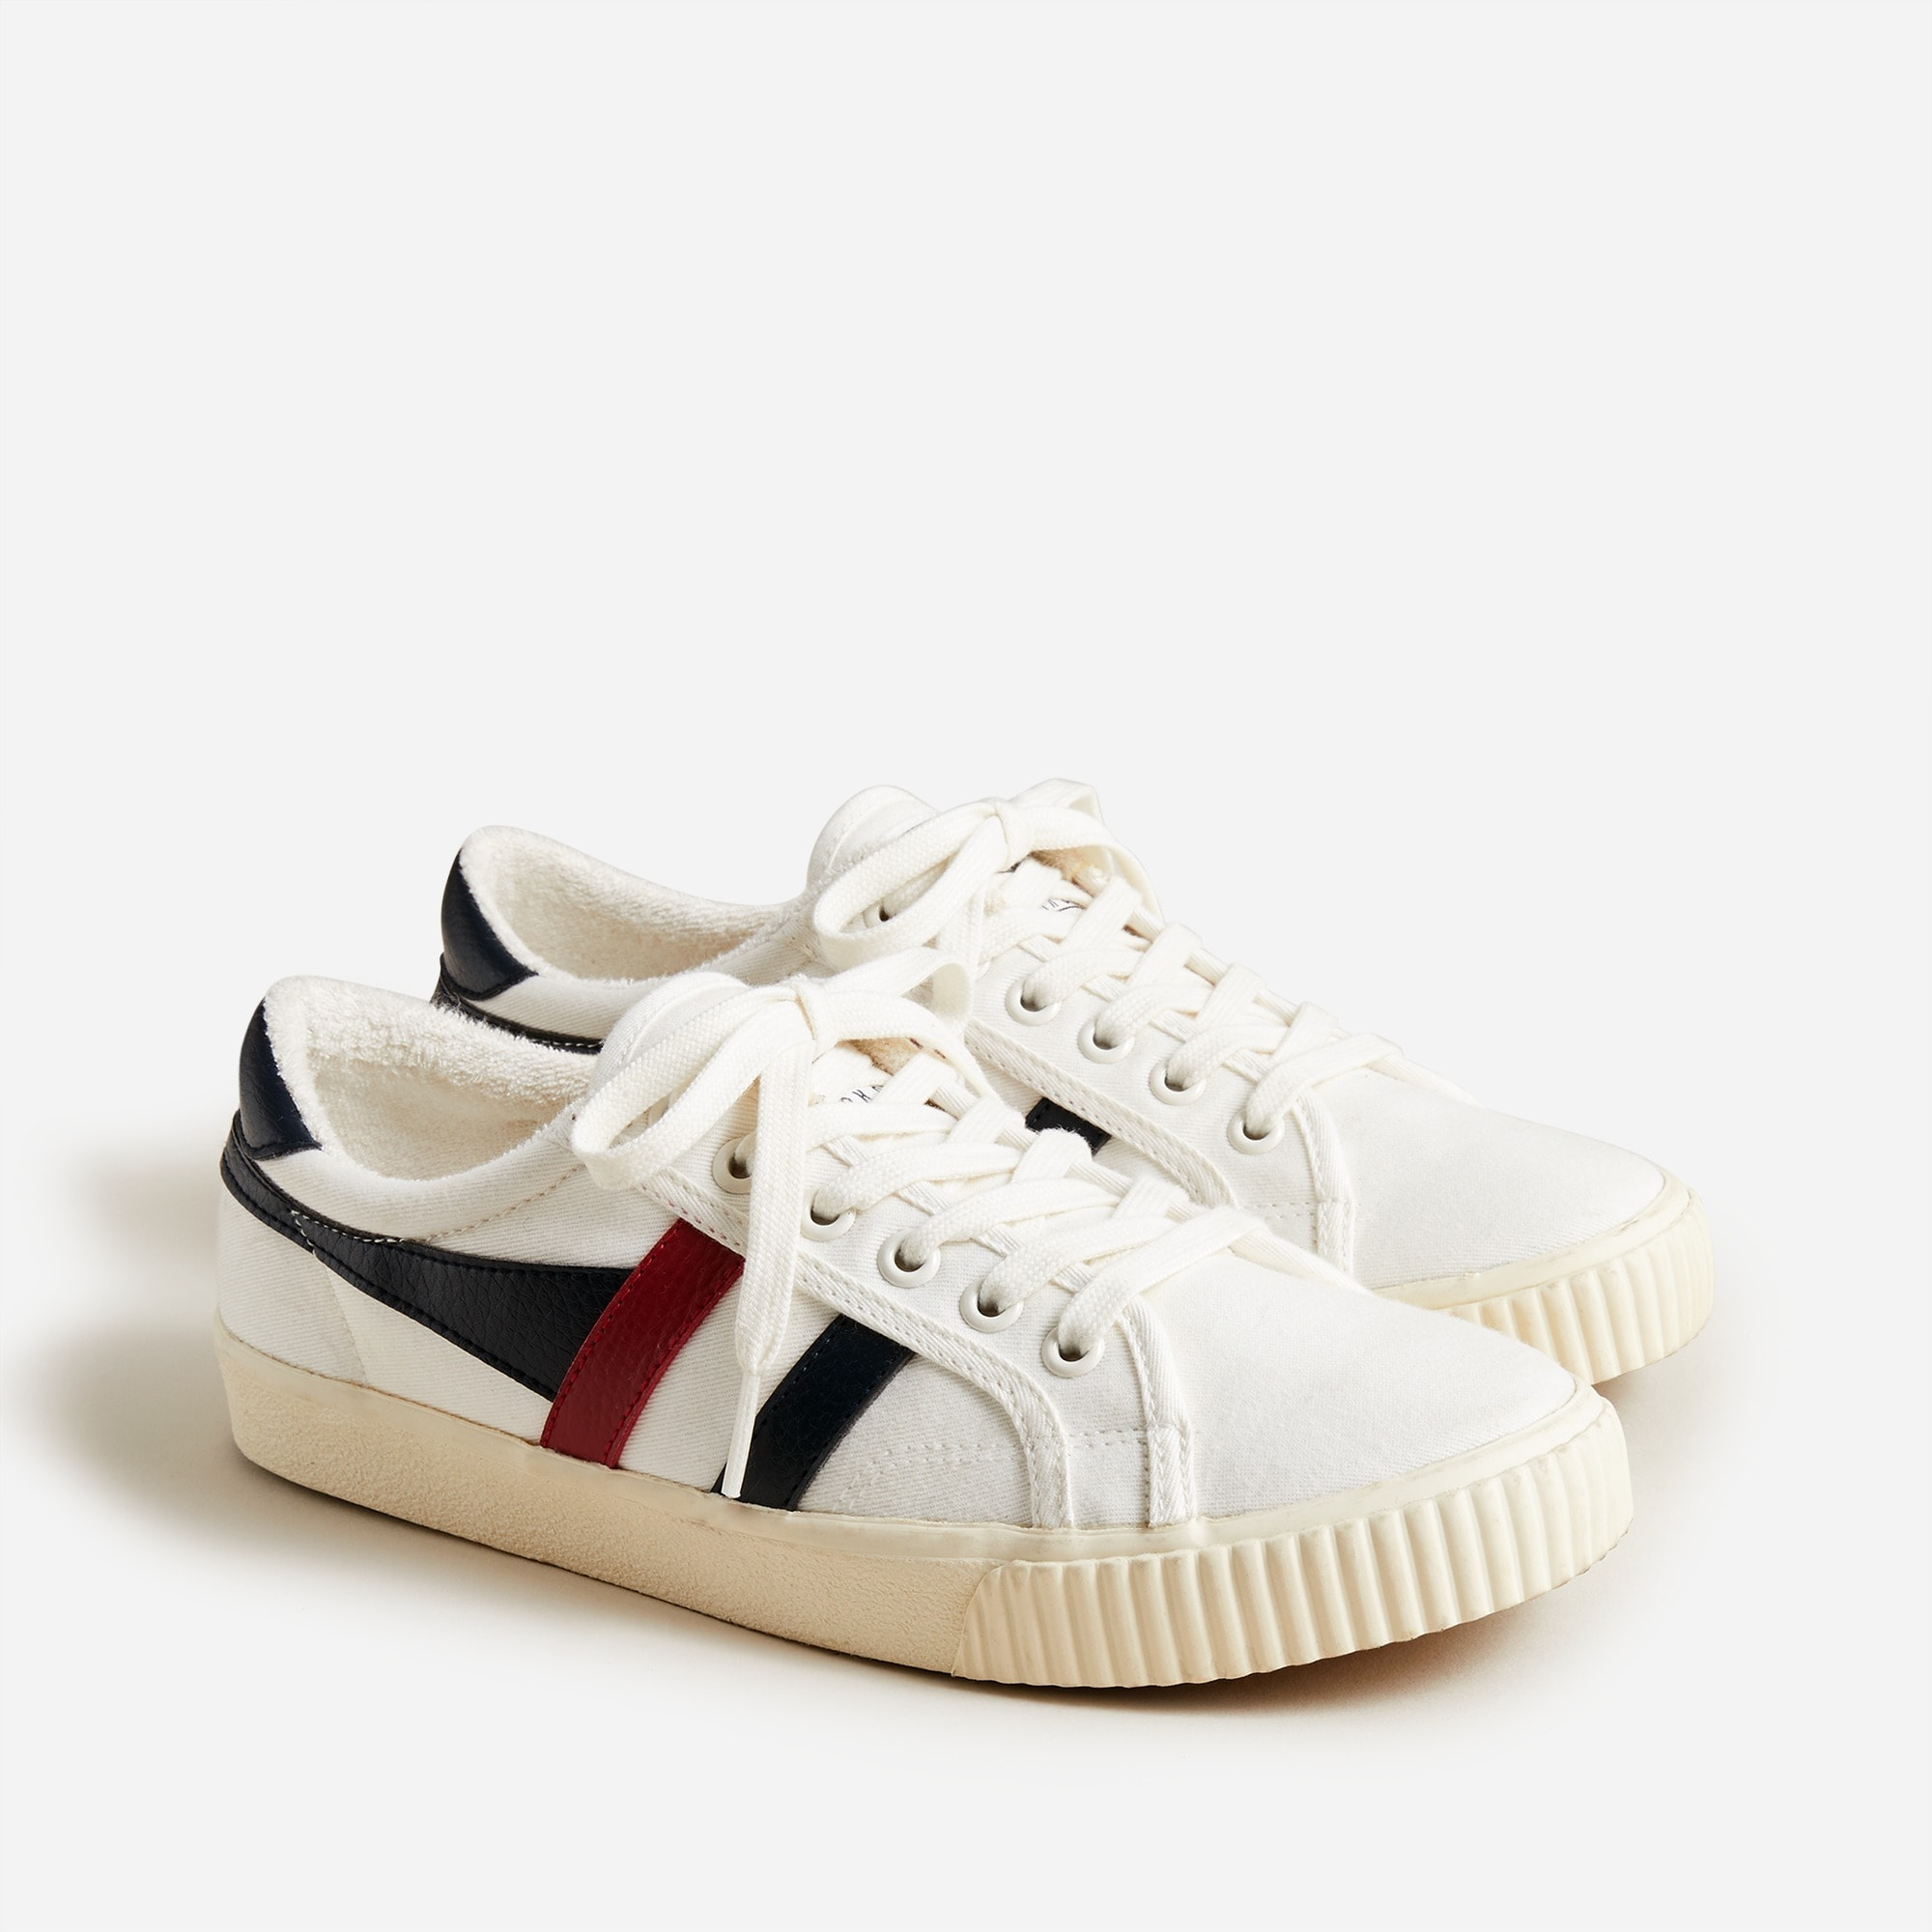 womens Gola® for J.Crew Mark Cox Tennis sneakers